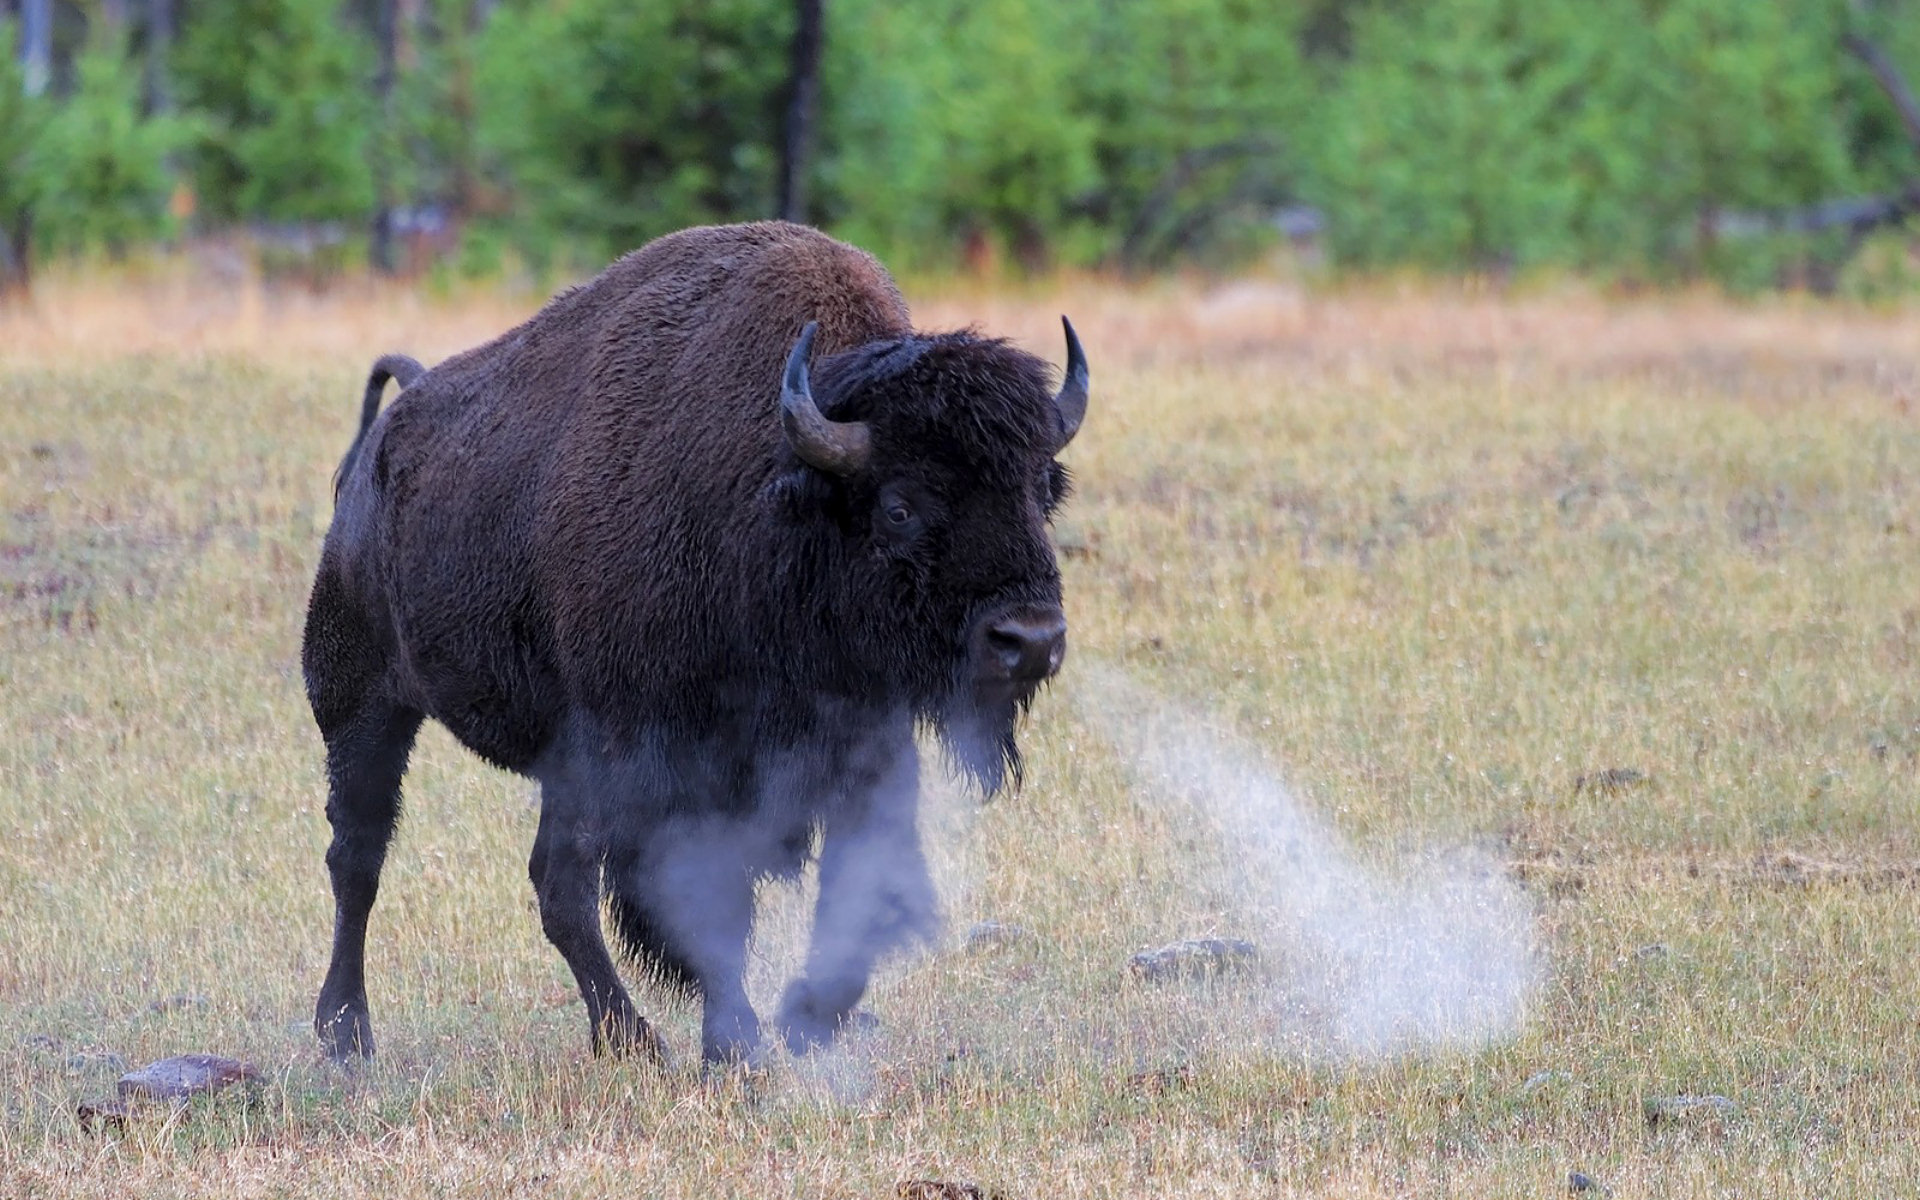 Bison Full HD Wallpaper and Background Image | 1920x1200 ...